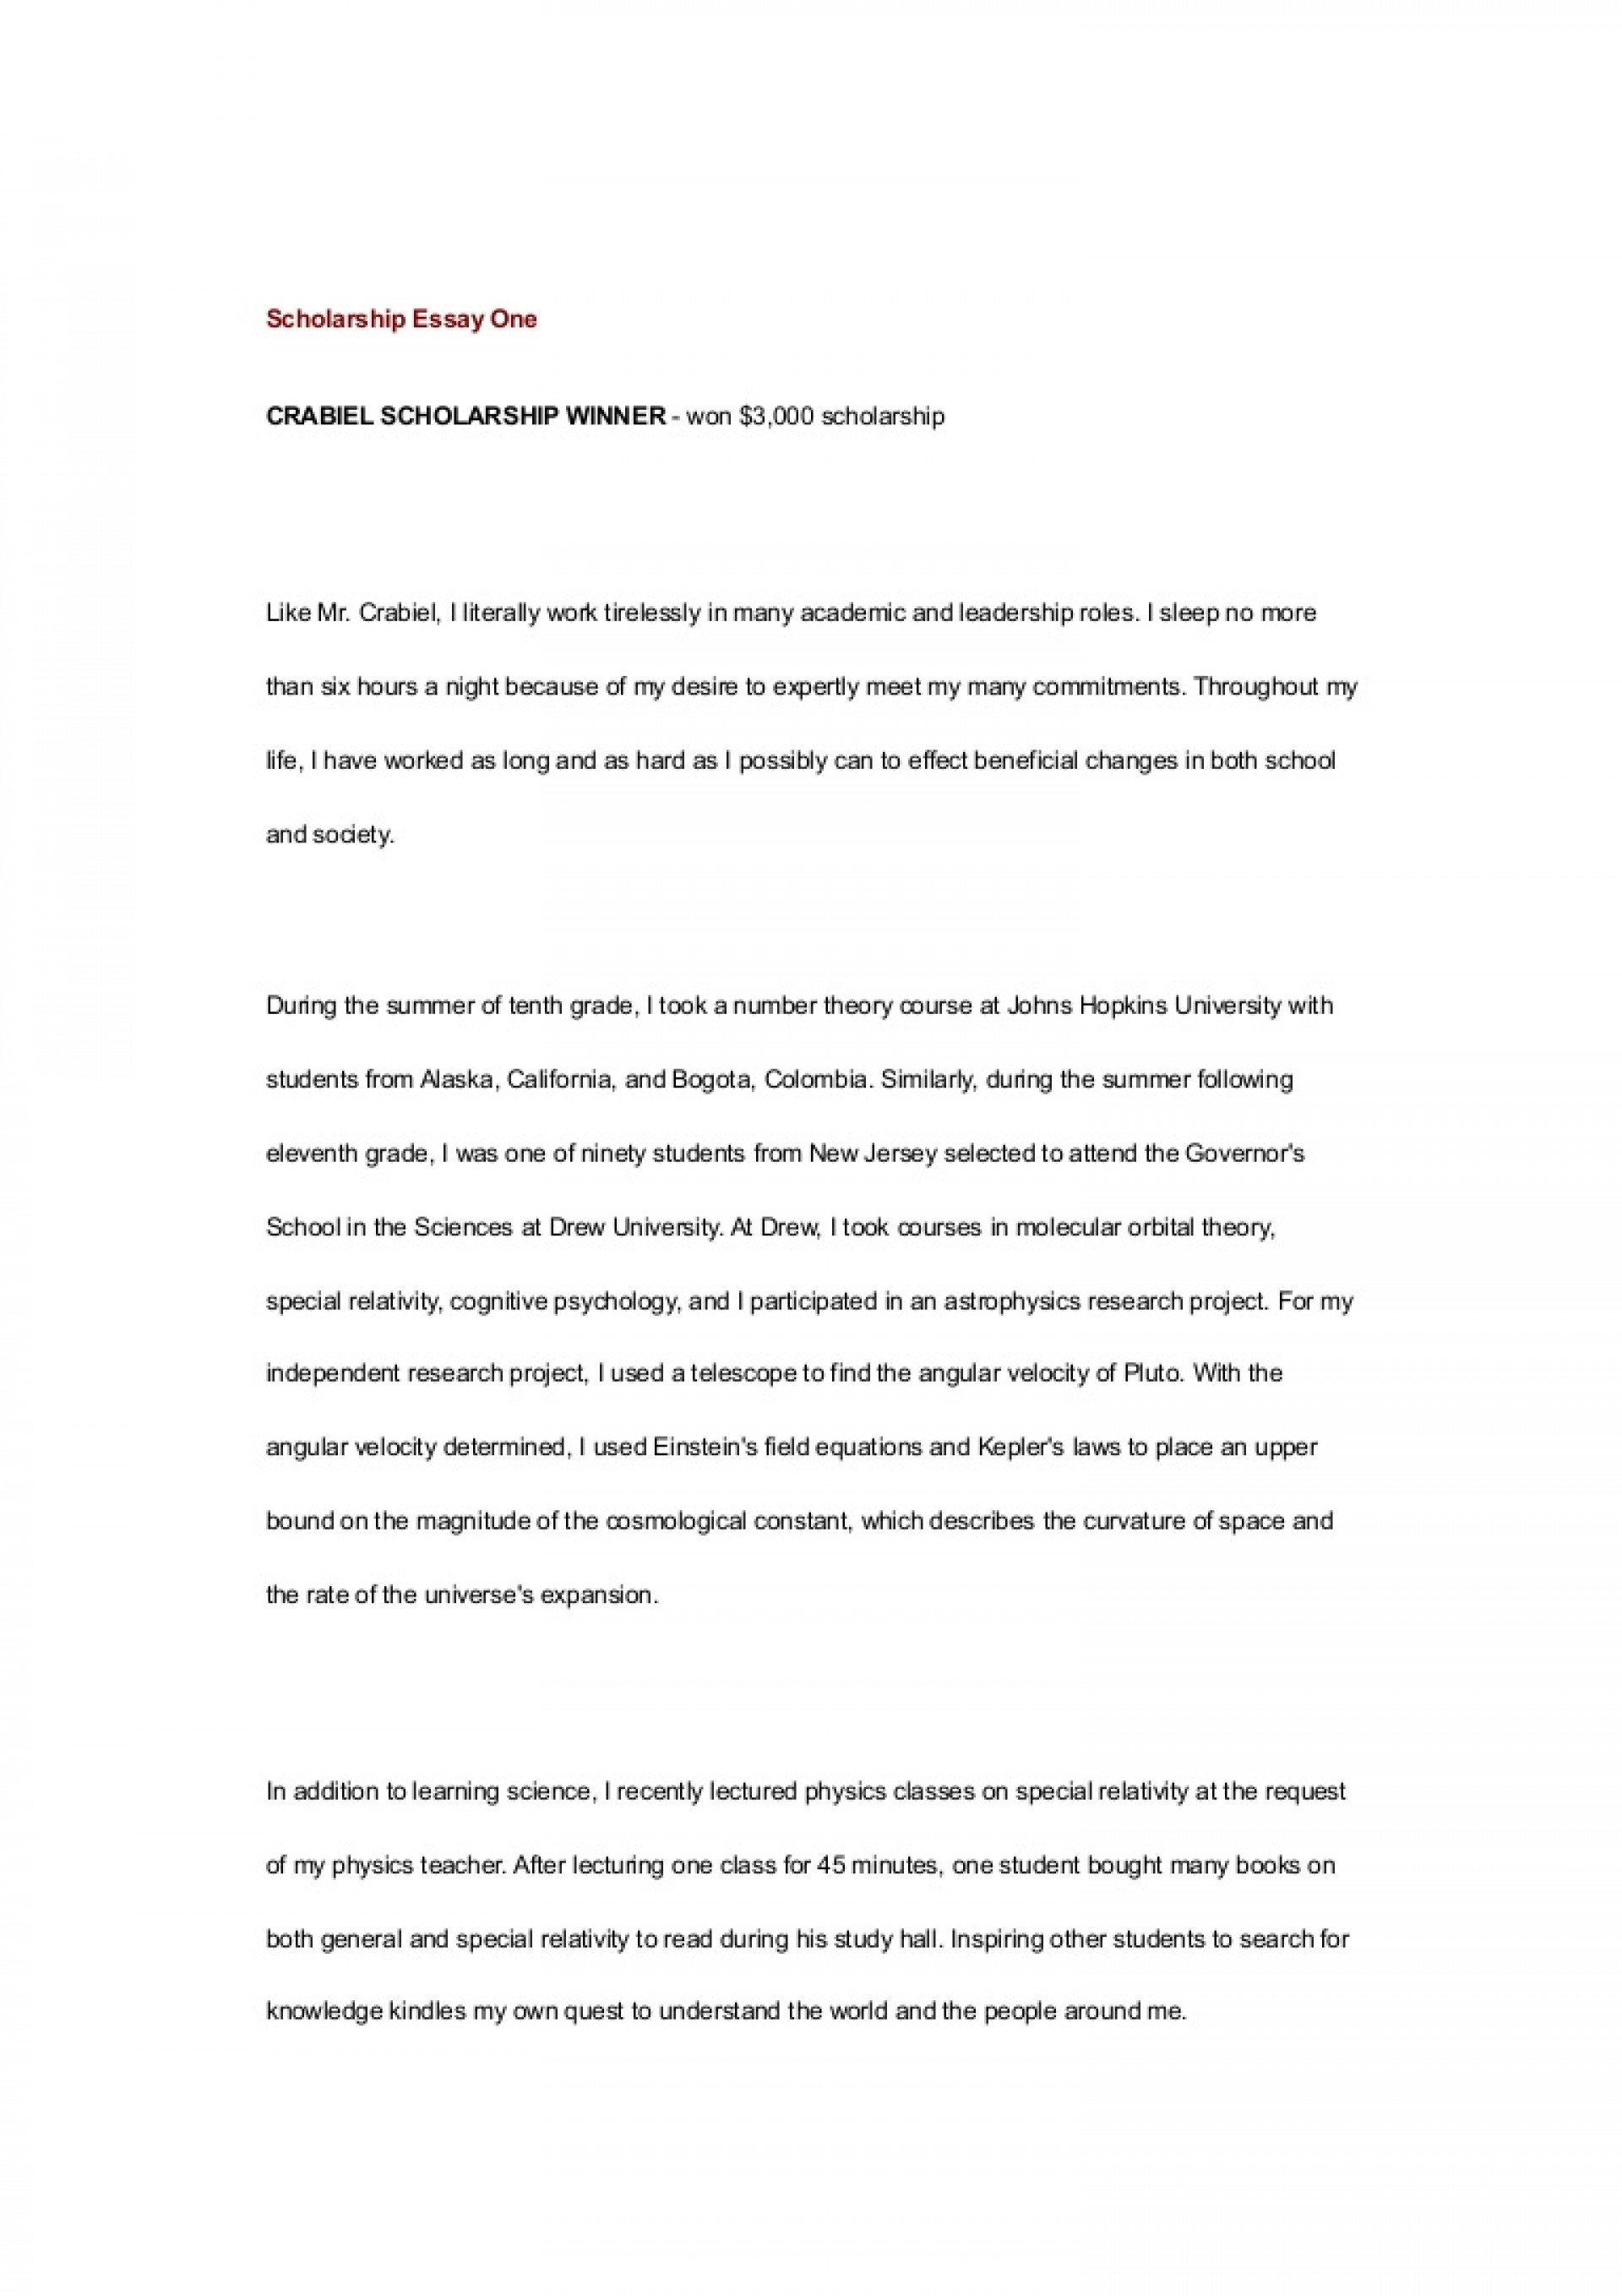 016 Leadership Essays For College Essay Example Scholarshipessayone Phpapp01 Thumbnail Beautiful Examples Of 1920